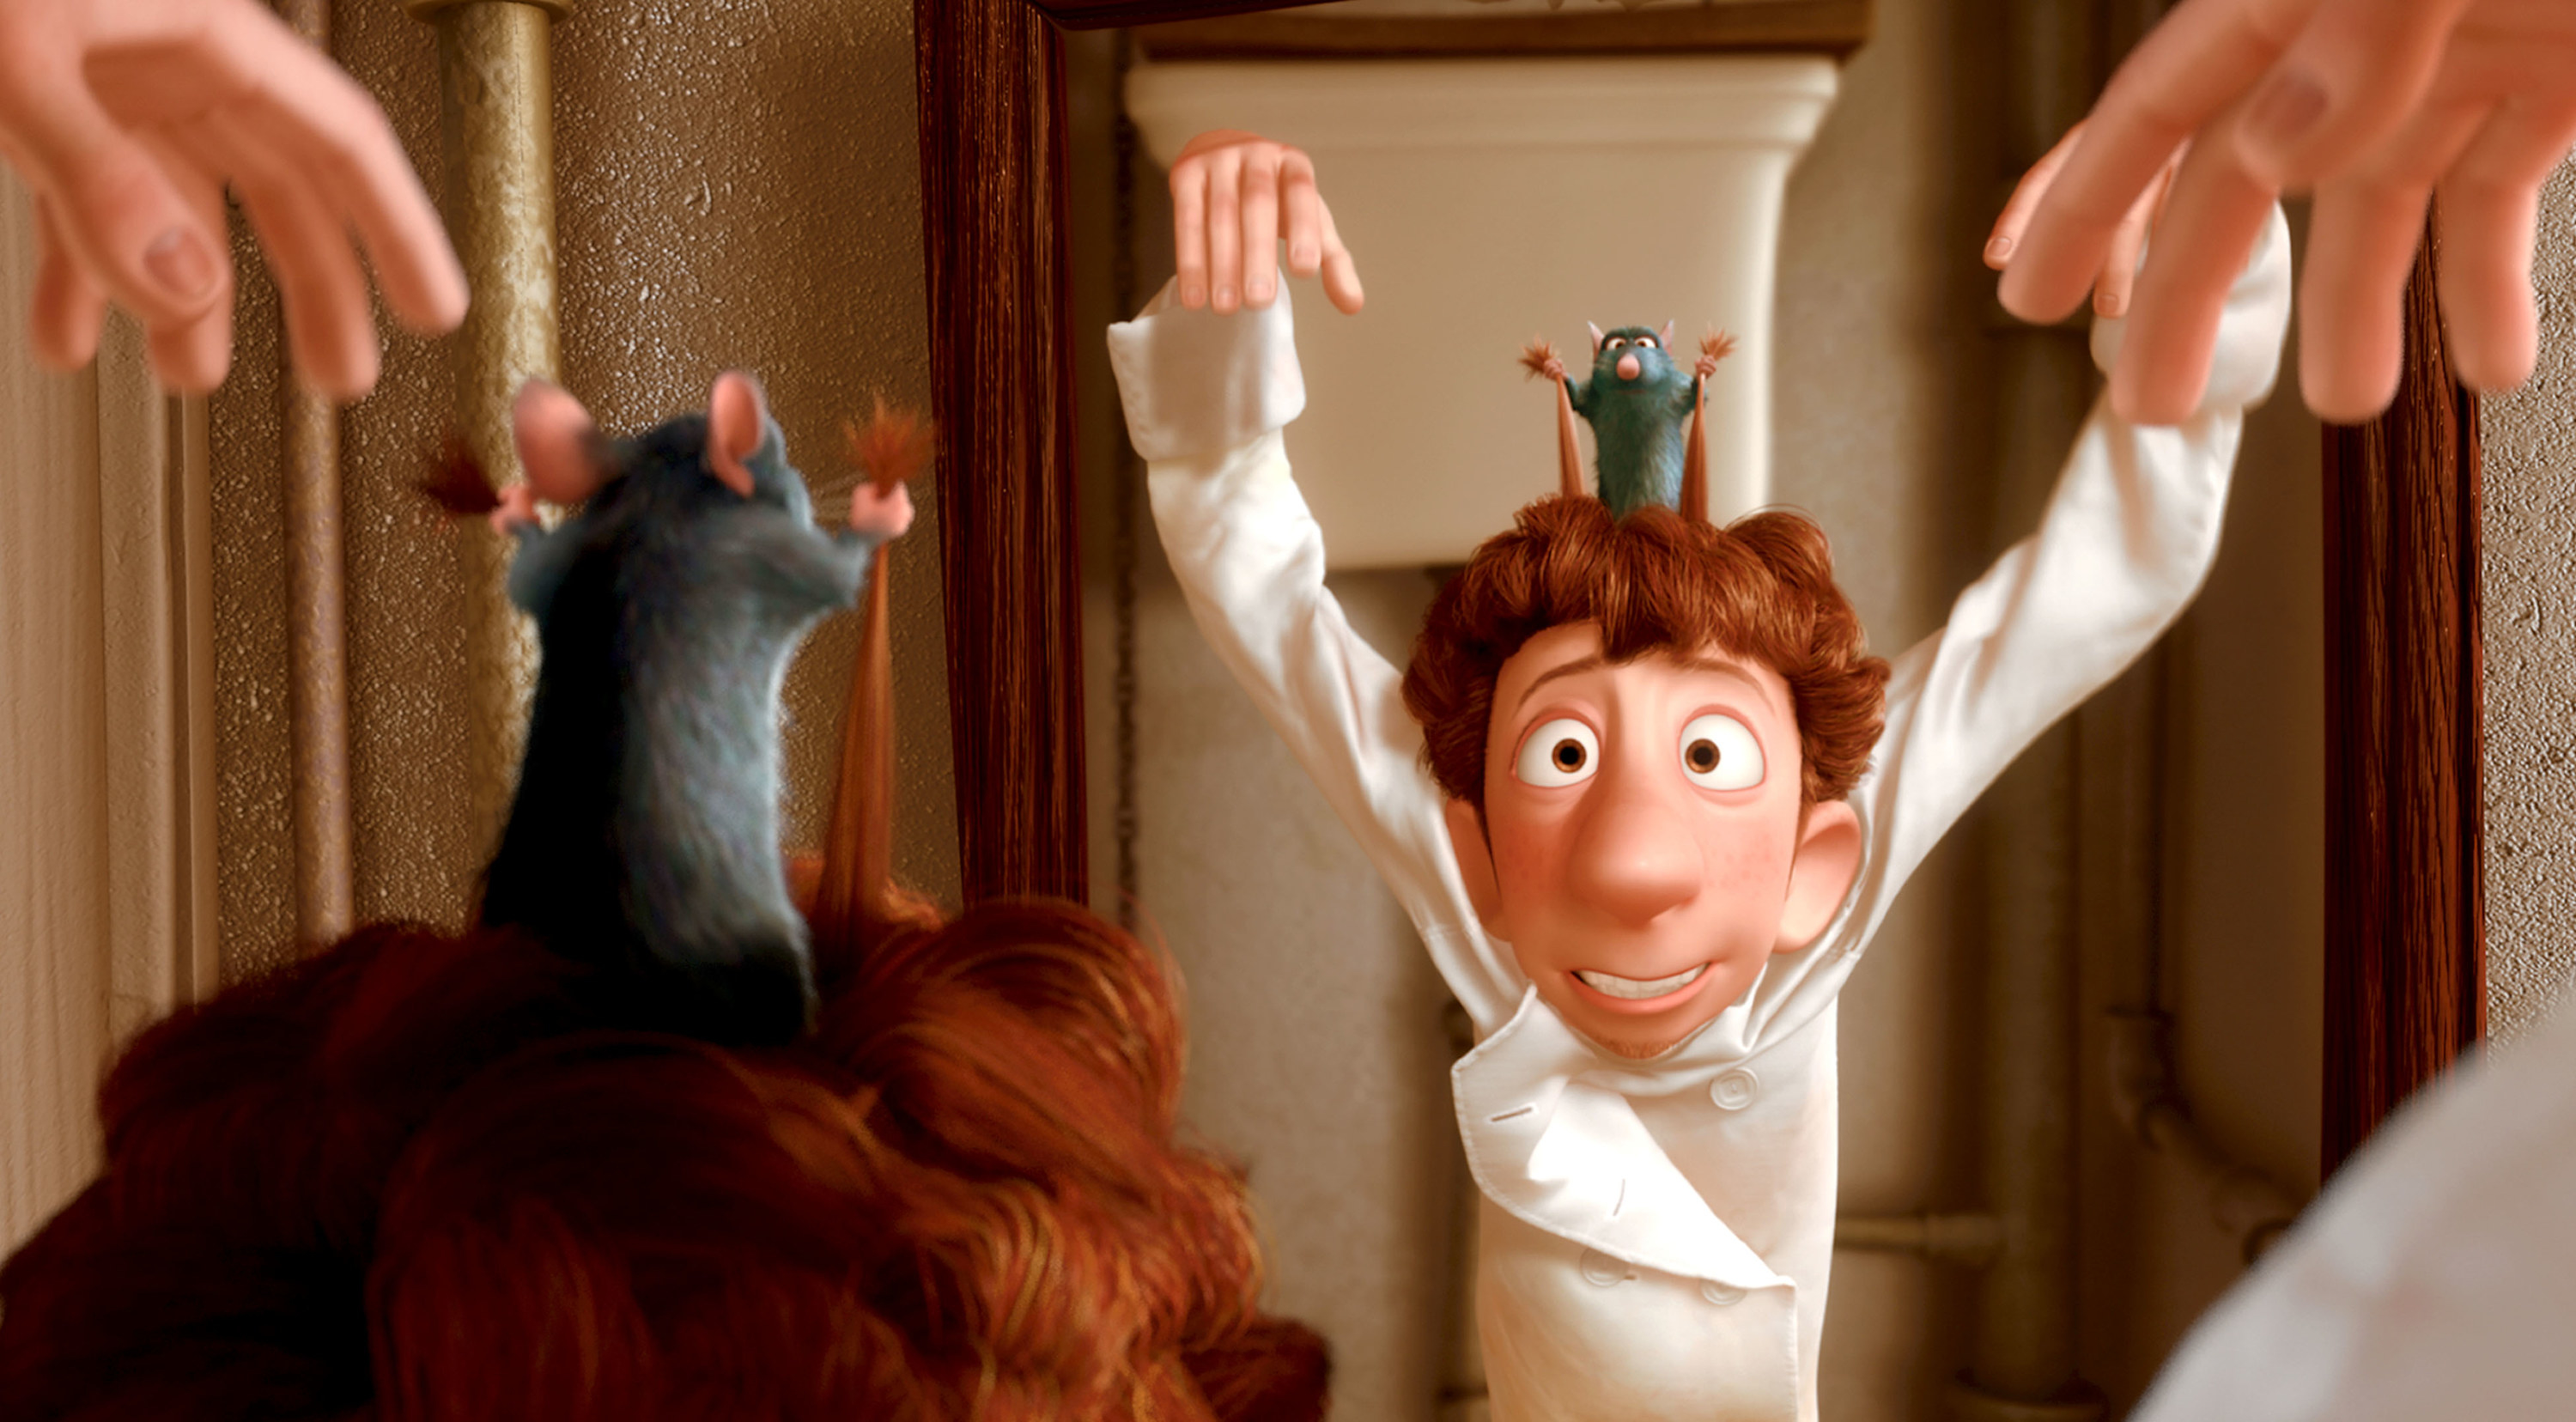 Remy tugging Alfredo's hair causing him to raise his arms